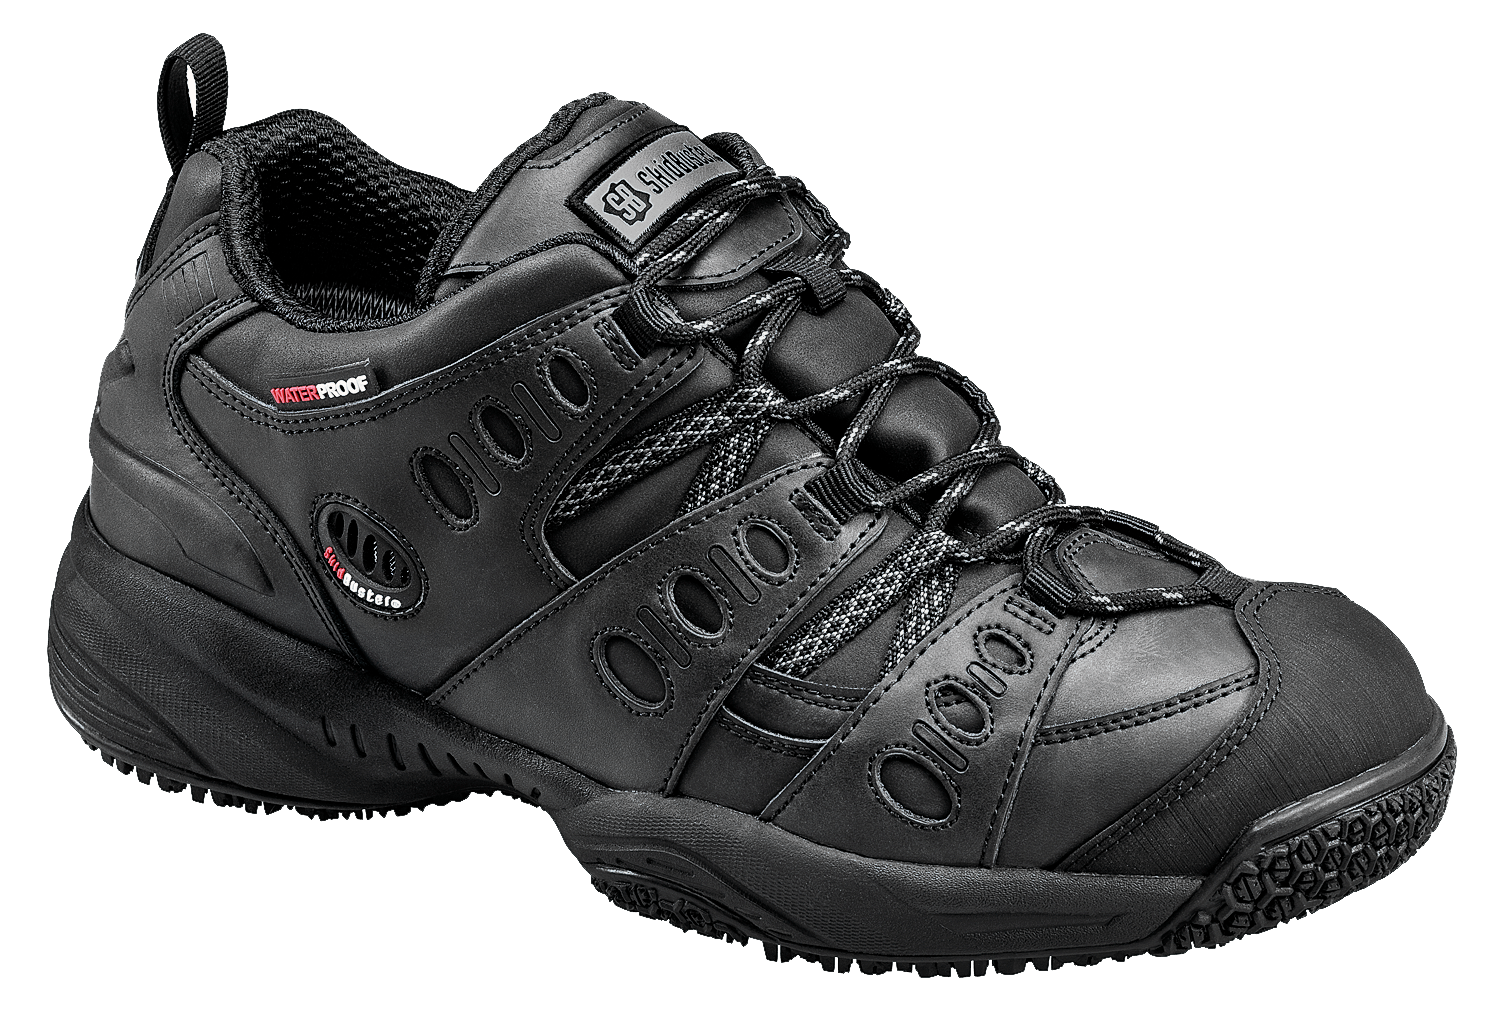 Skidbuster Waterproof SR Athletic